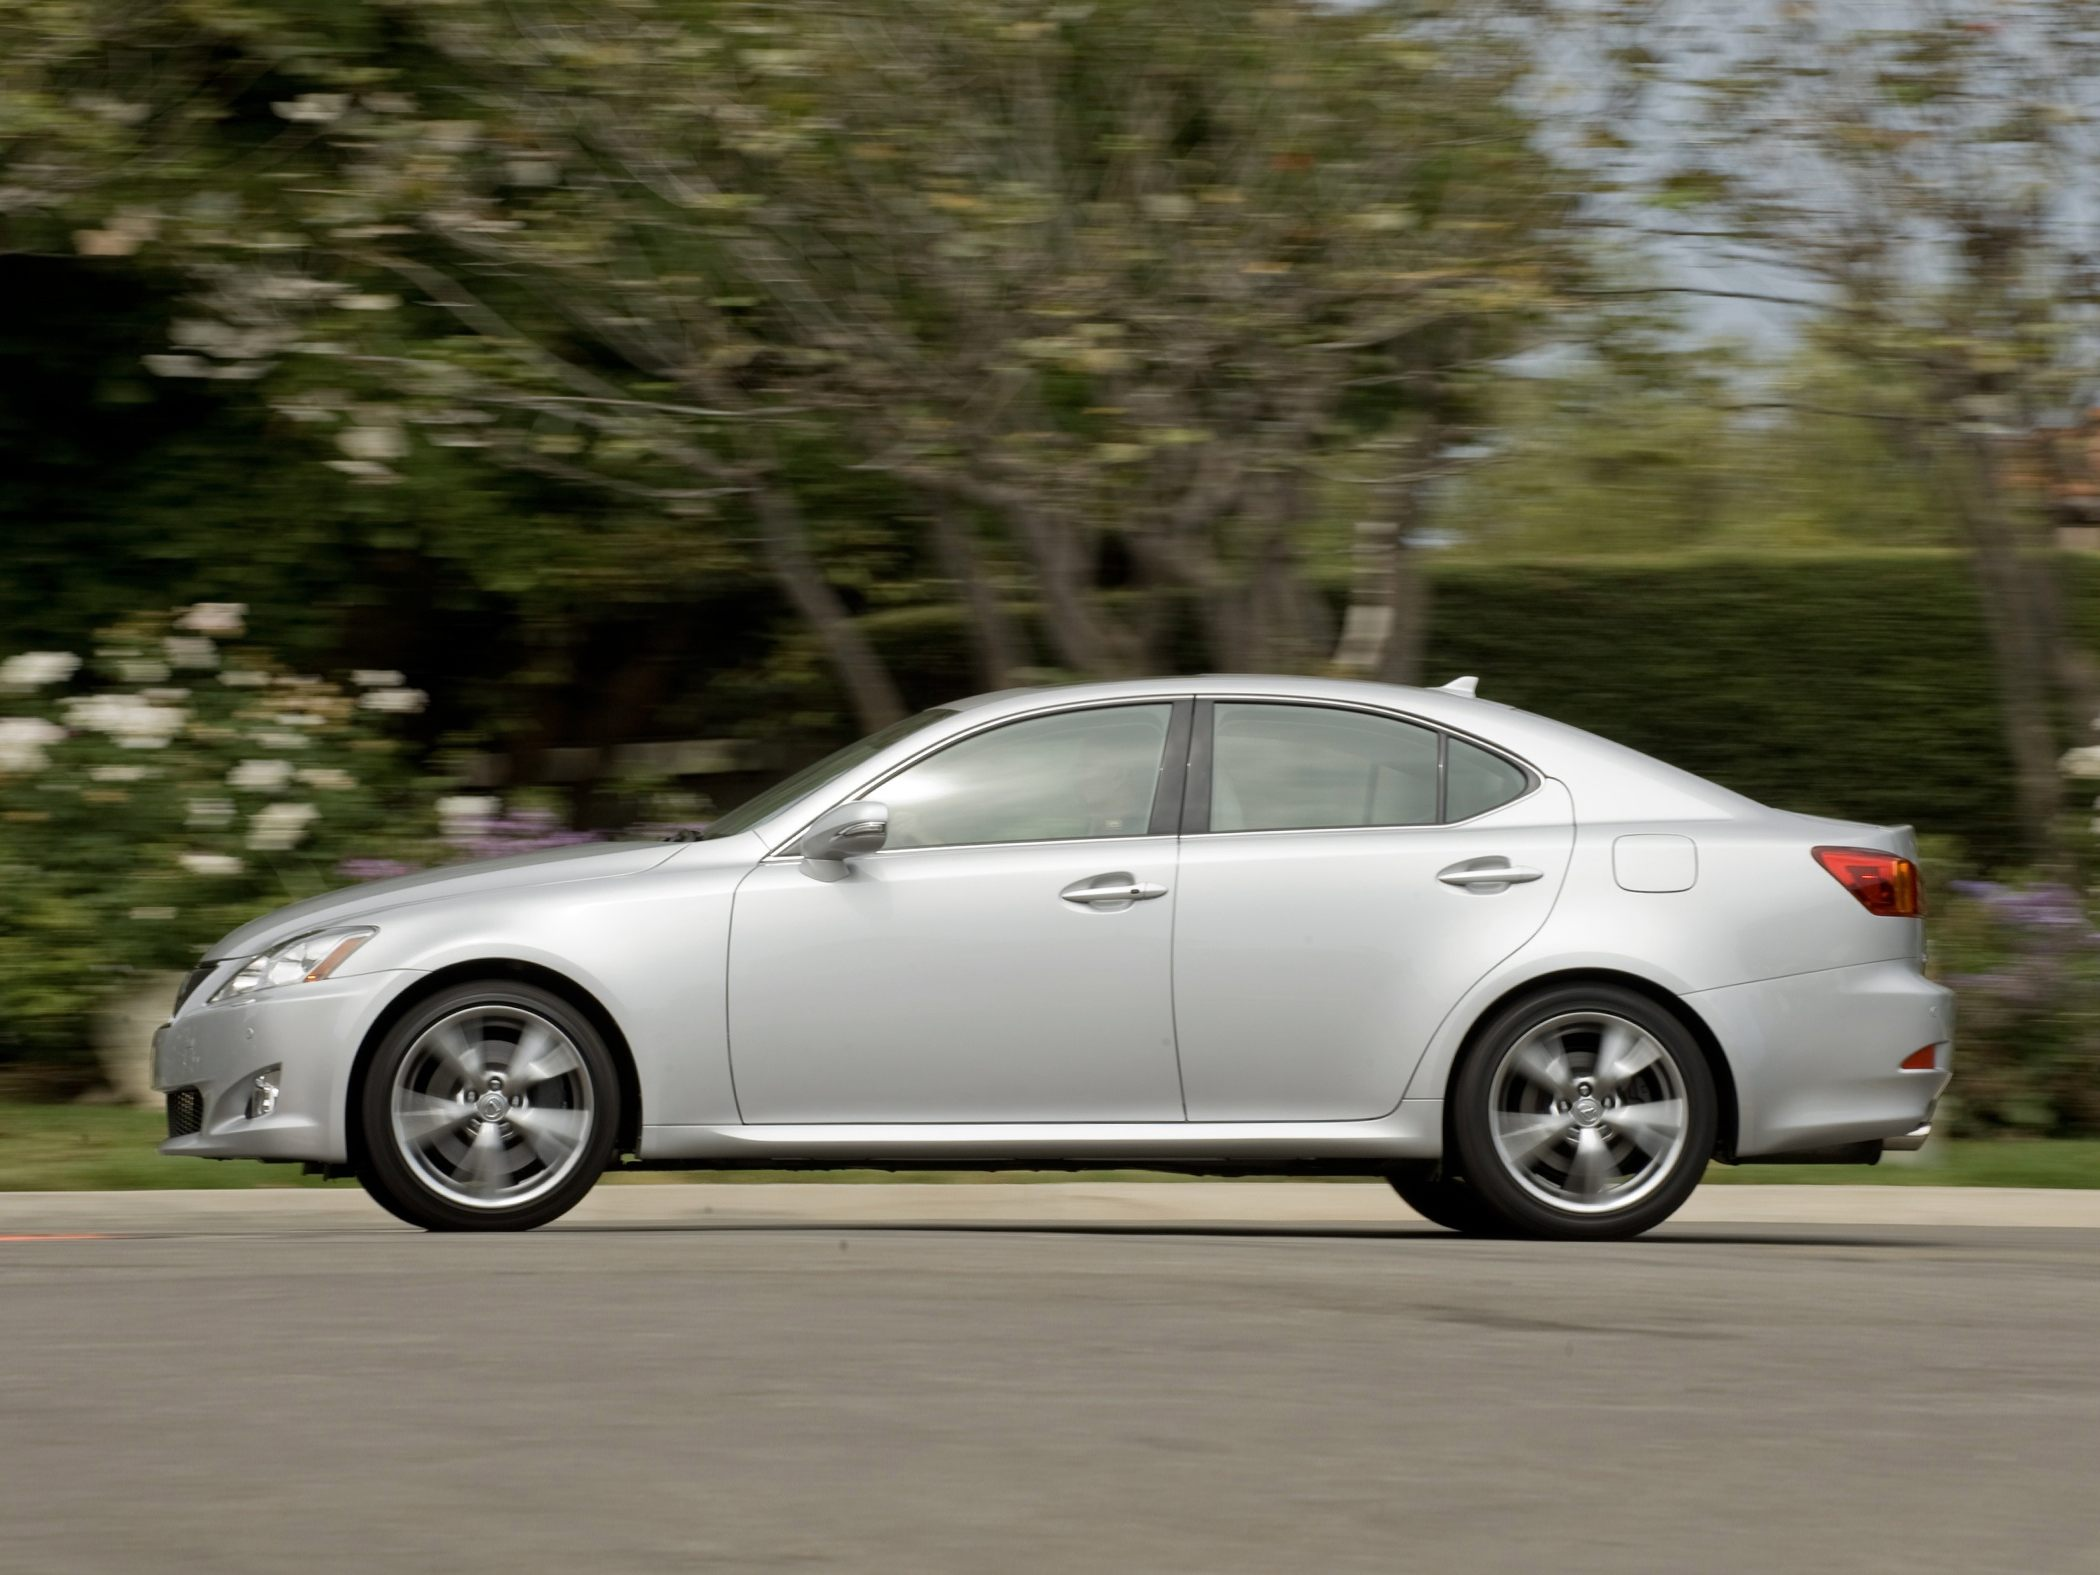 2010 Lexus Is 350 #11